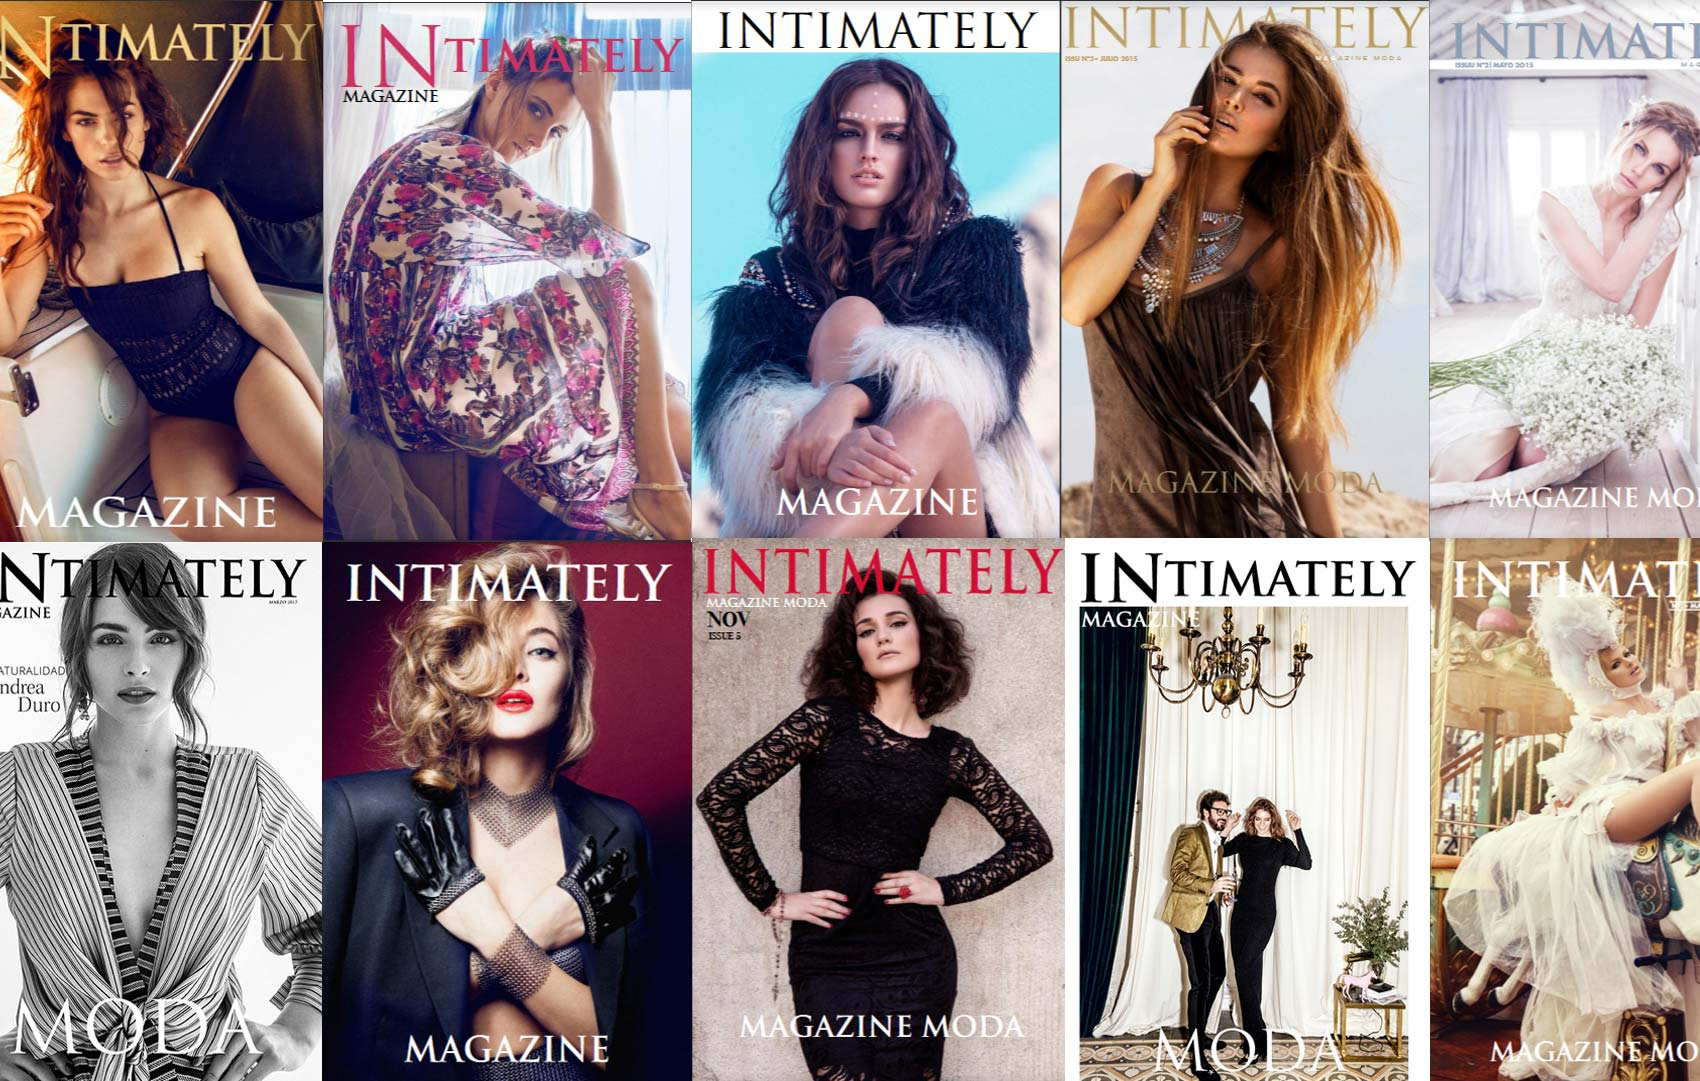 intimately-magazine